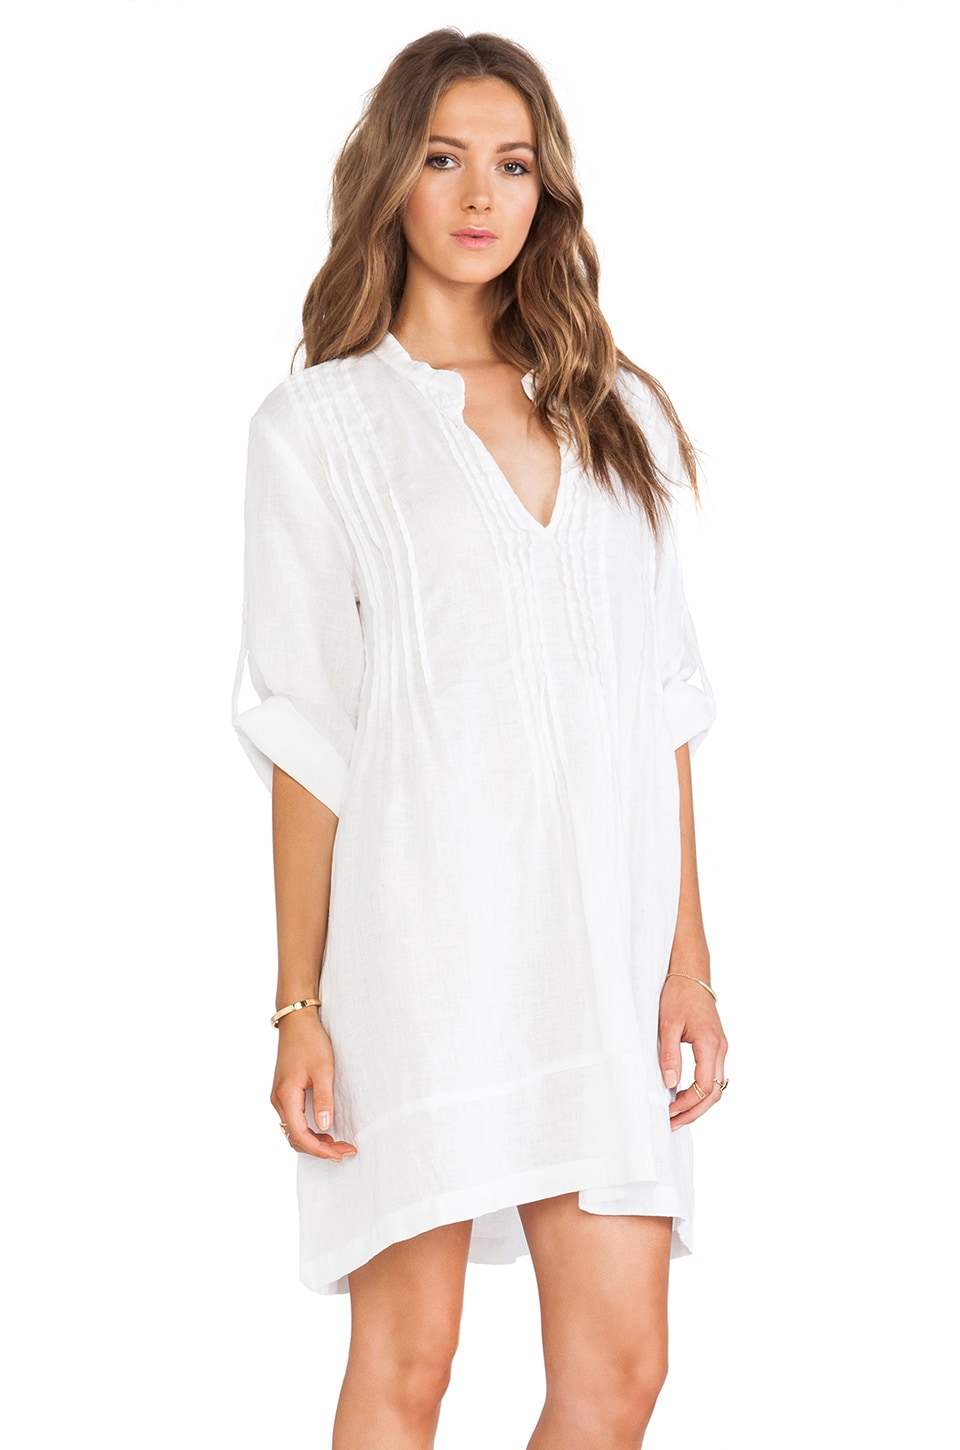 CP SHADES Regina Tunic Dress in White | REVOLVE